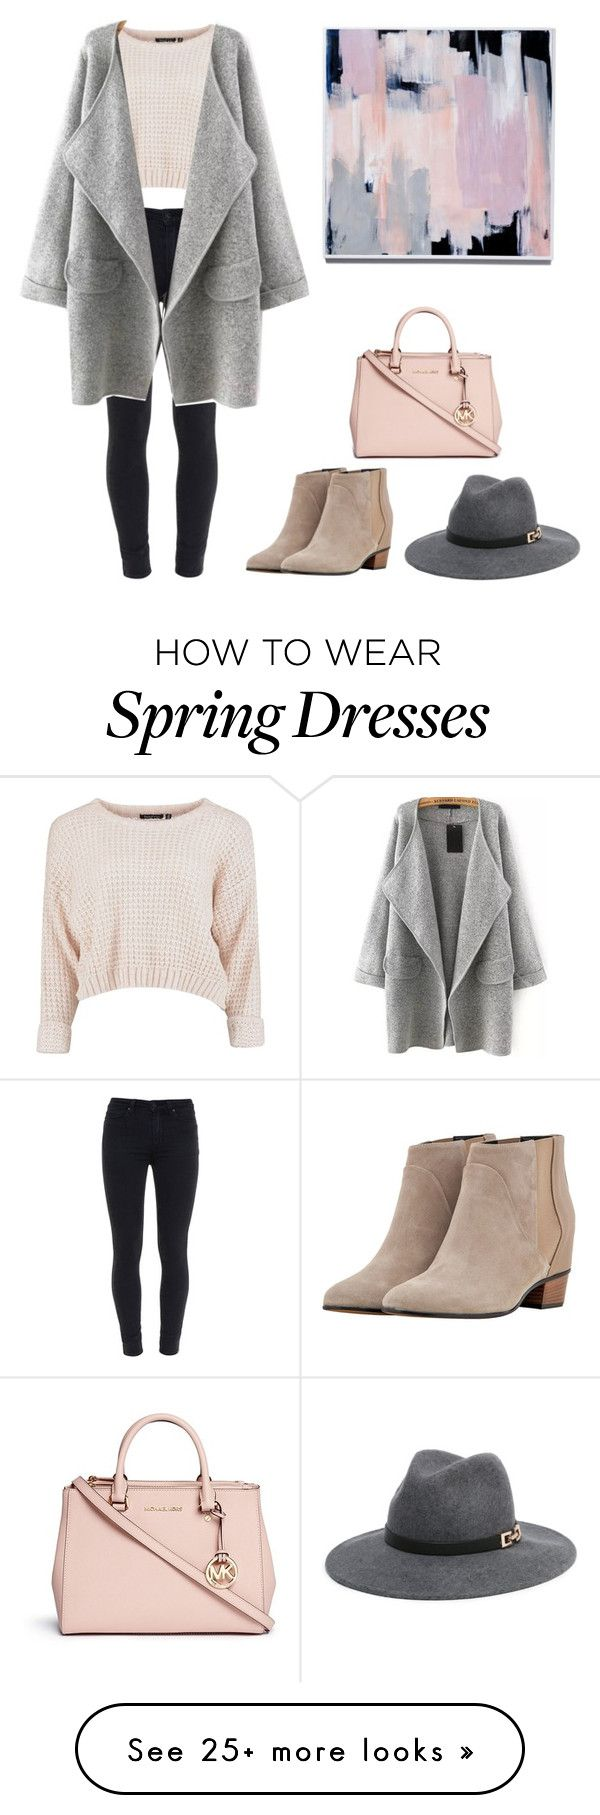 """""""pink&grey aesthetic"""" by ashleyle292 on Polyvore featuring Paige Denim, Golden Goose, Bebe and Michael Kors"""